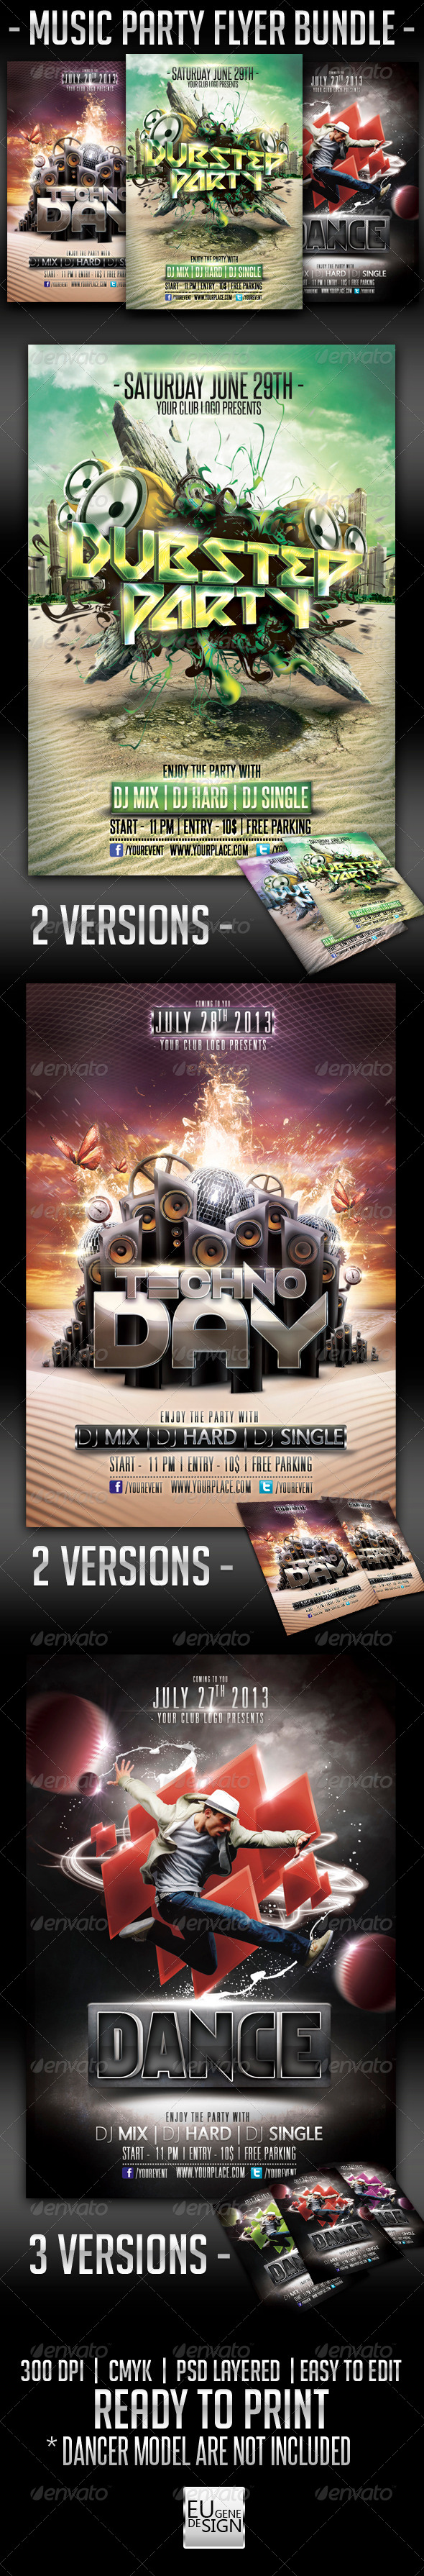 GraphicRiver Music Party Flyer Bundle 5614392